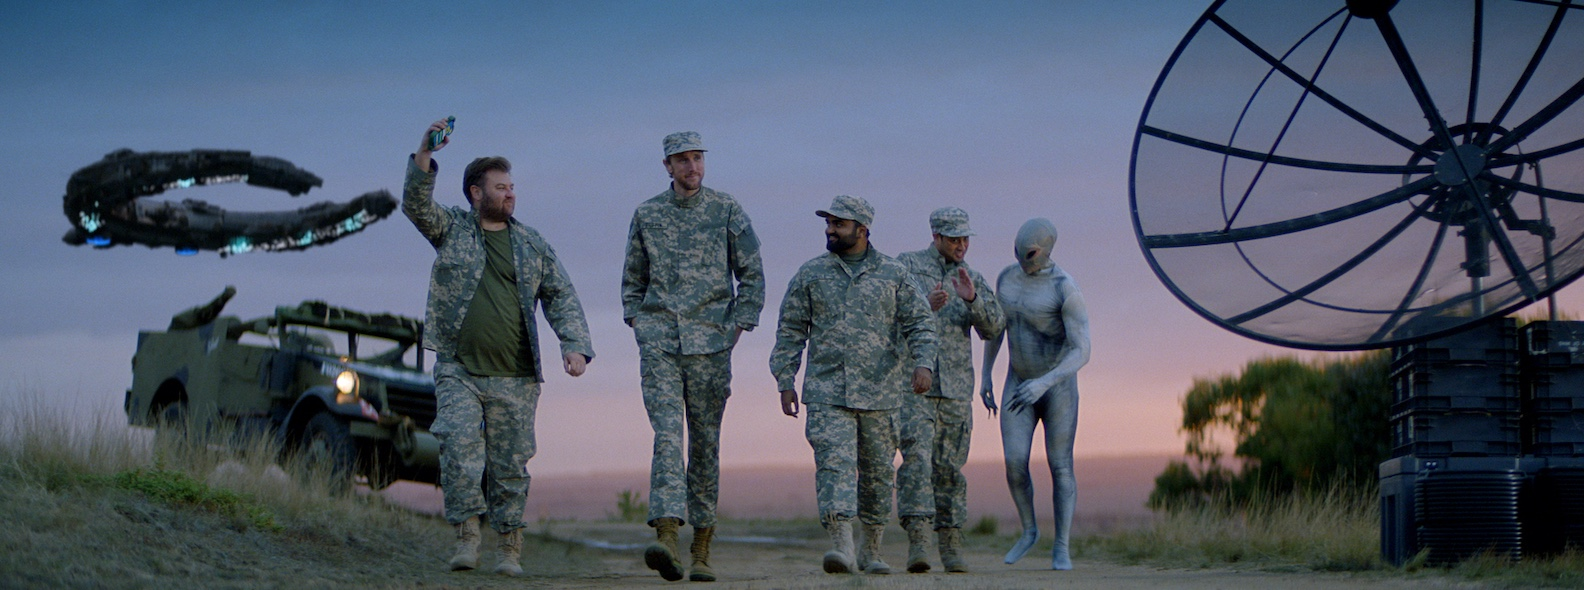 Sportsbet launches Bet With Mates amid an alien invasion in latest campaign via Palomina